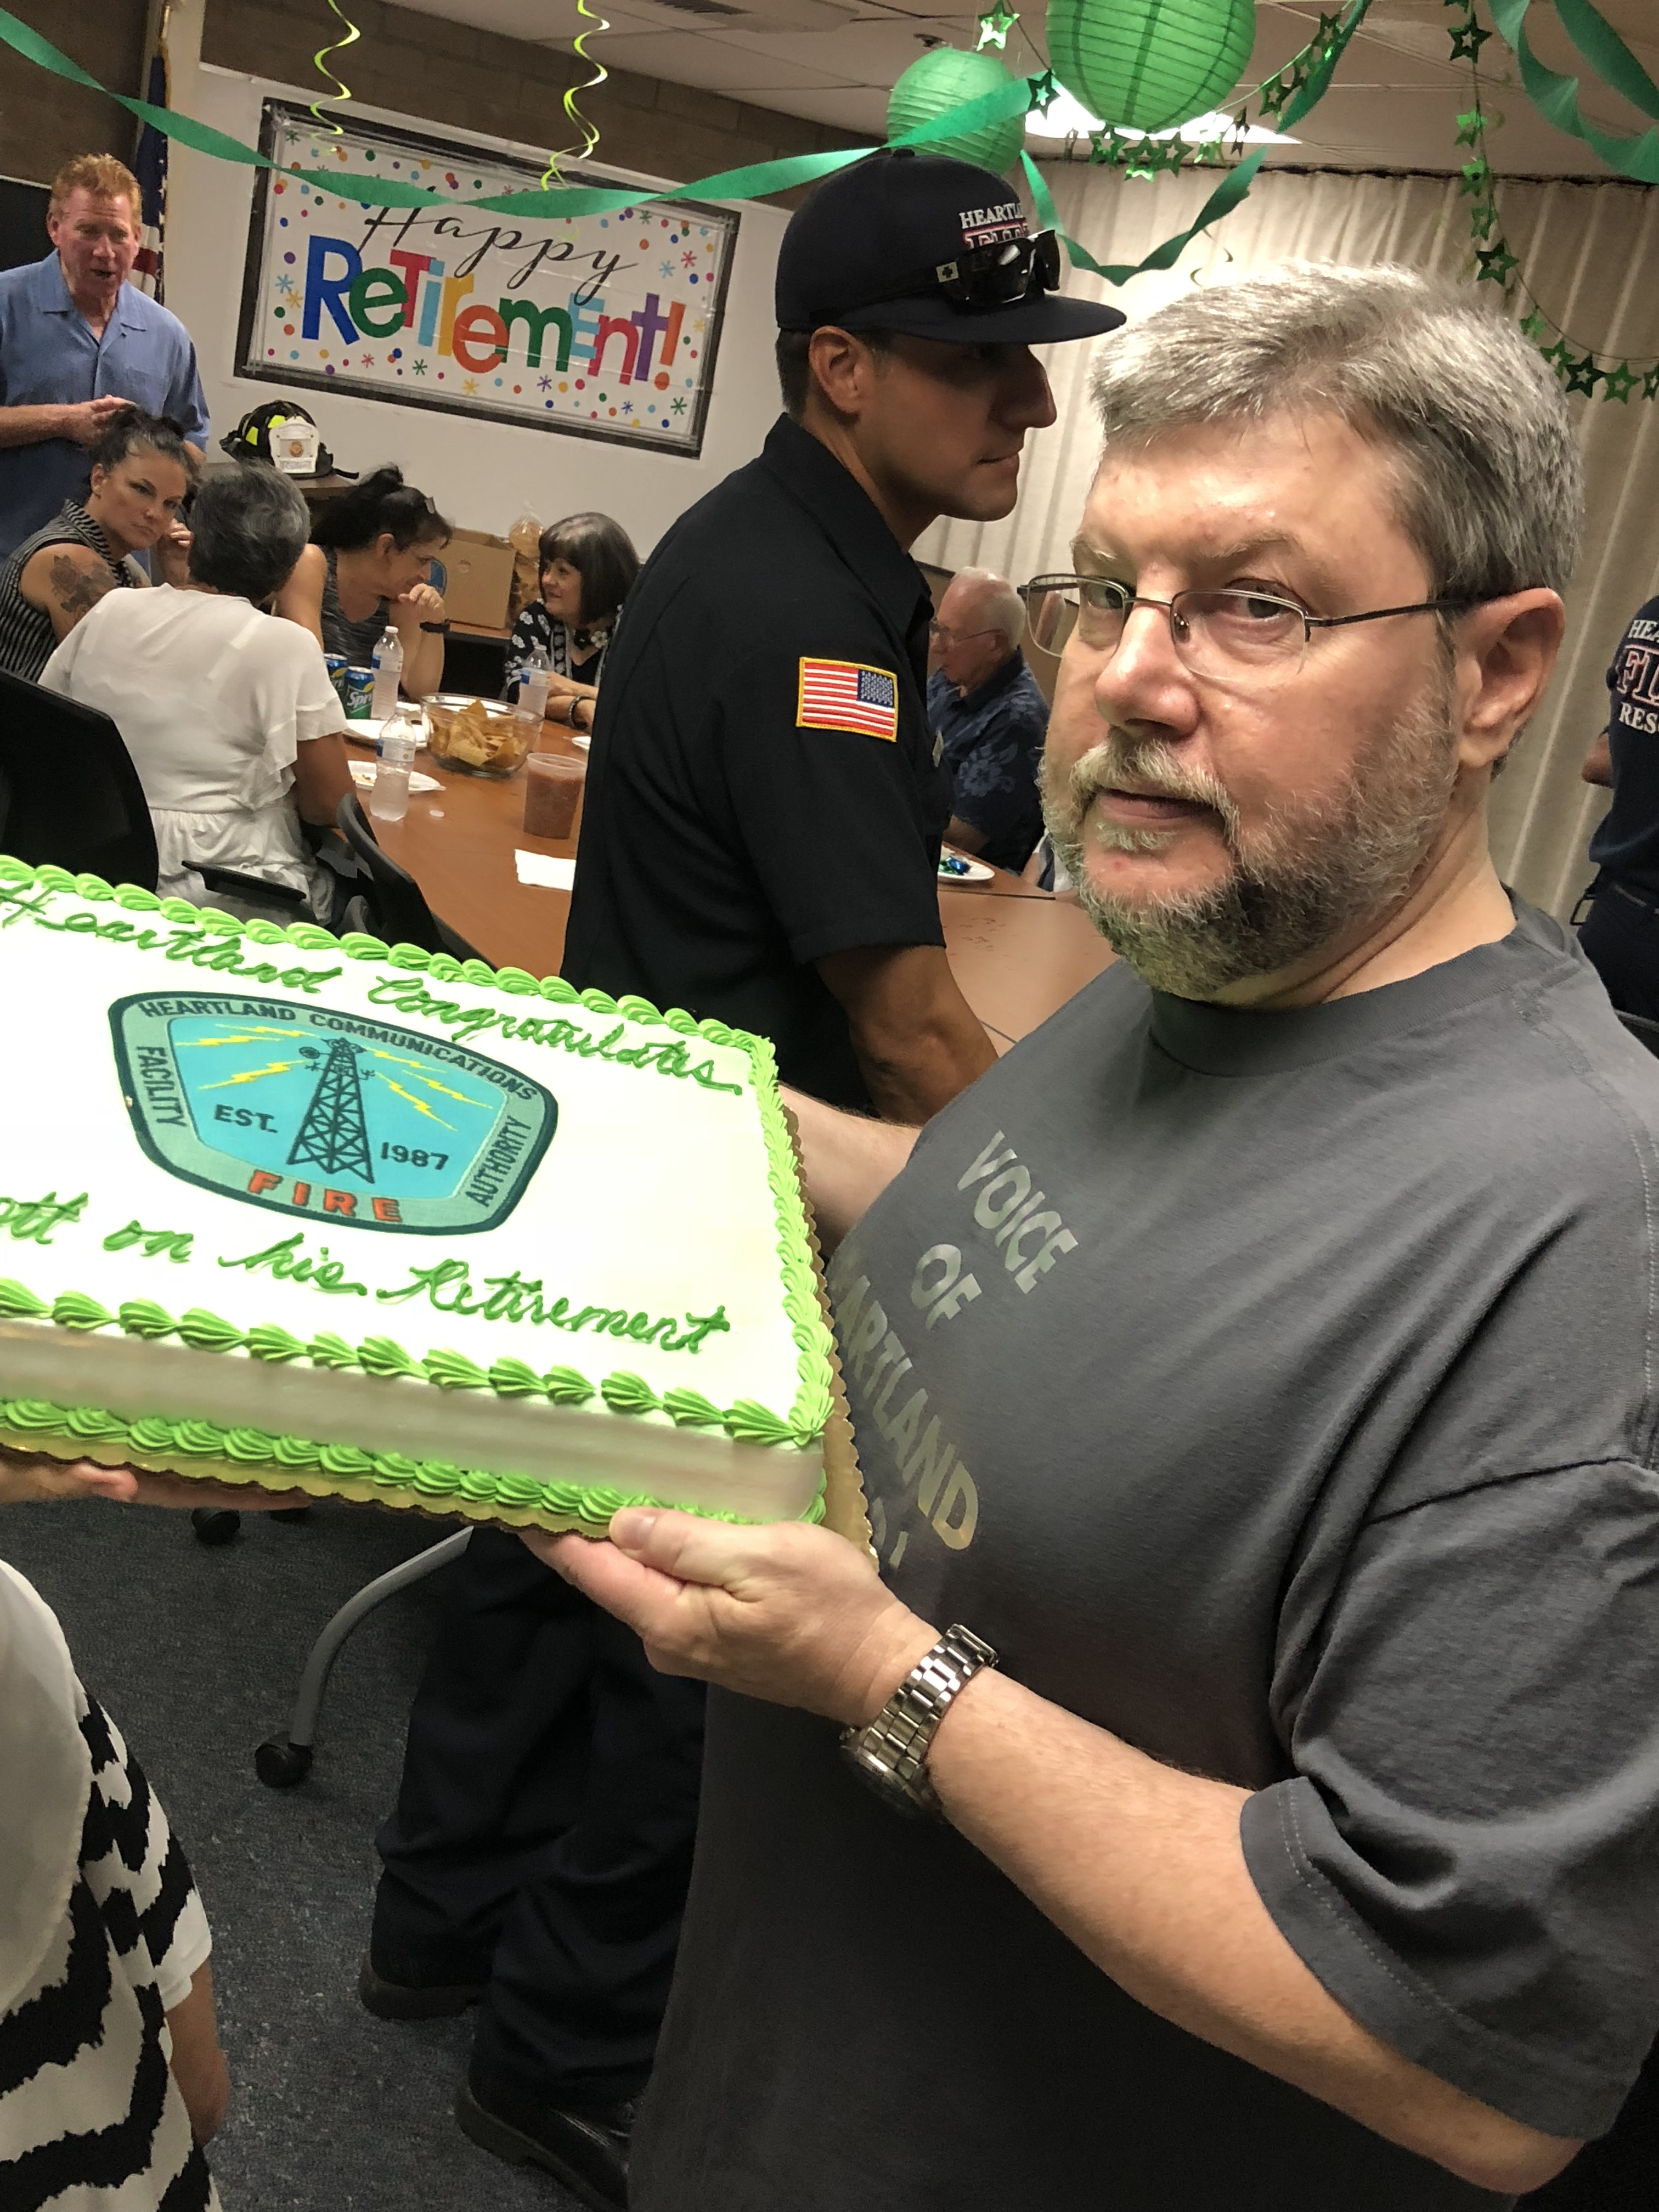 Thank you Scott for 34 years of service